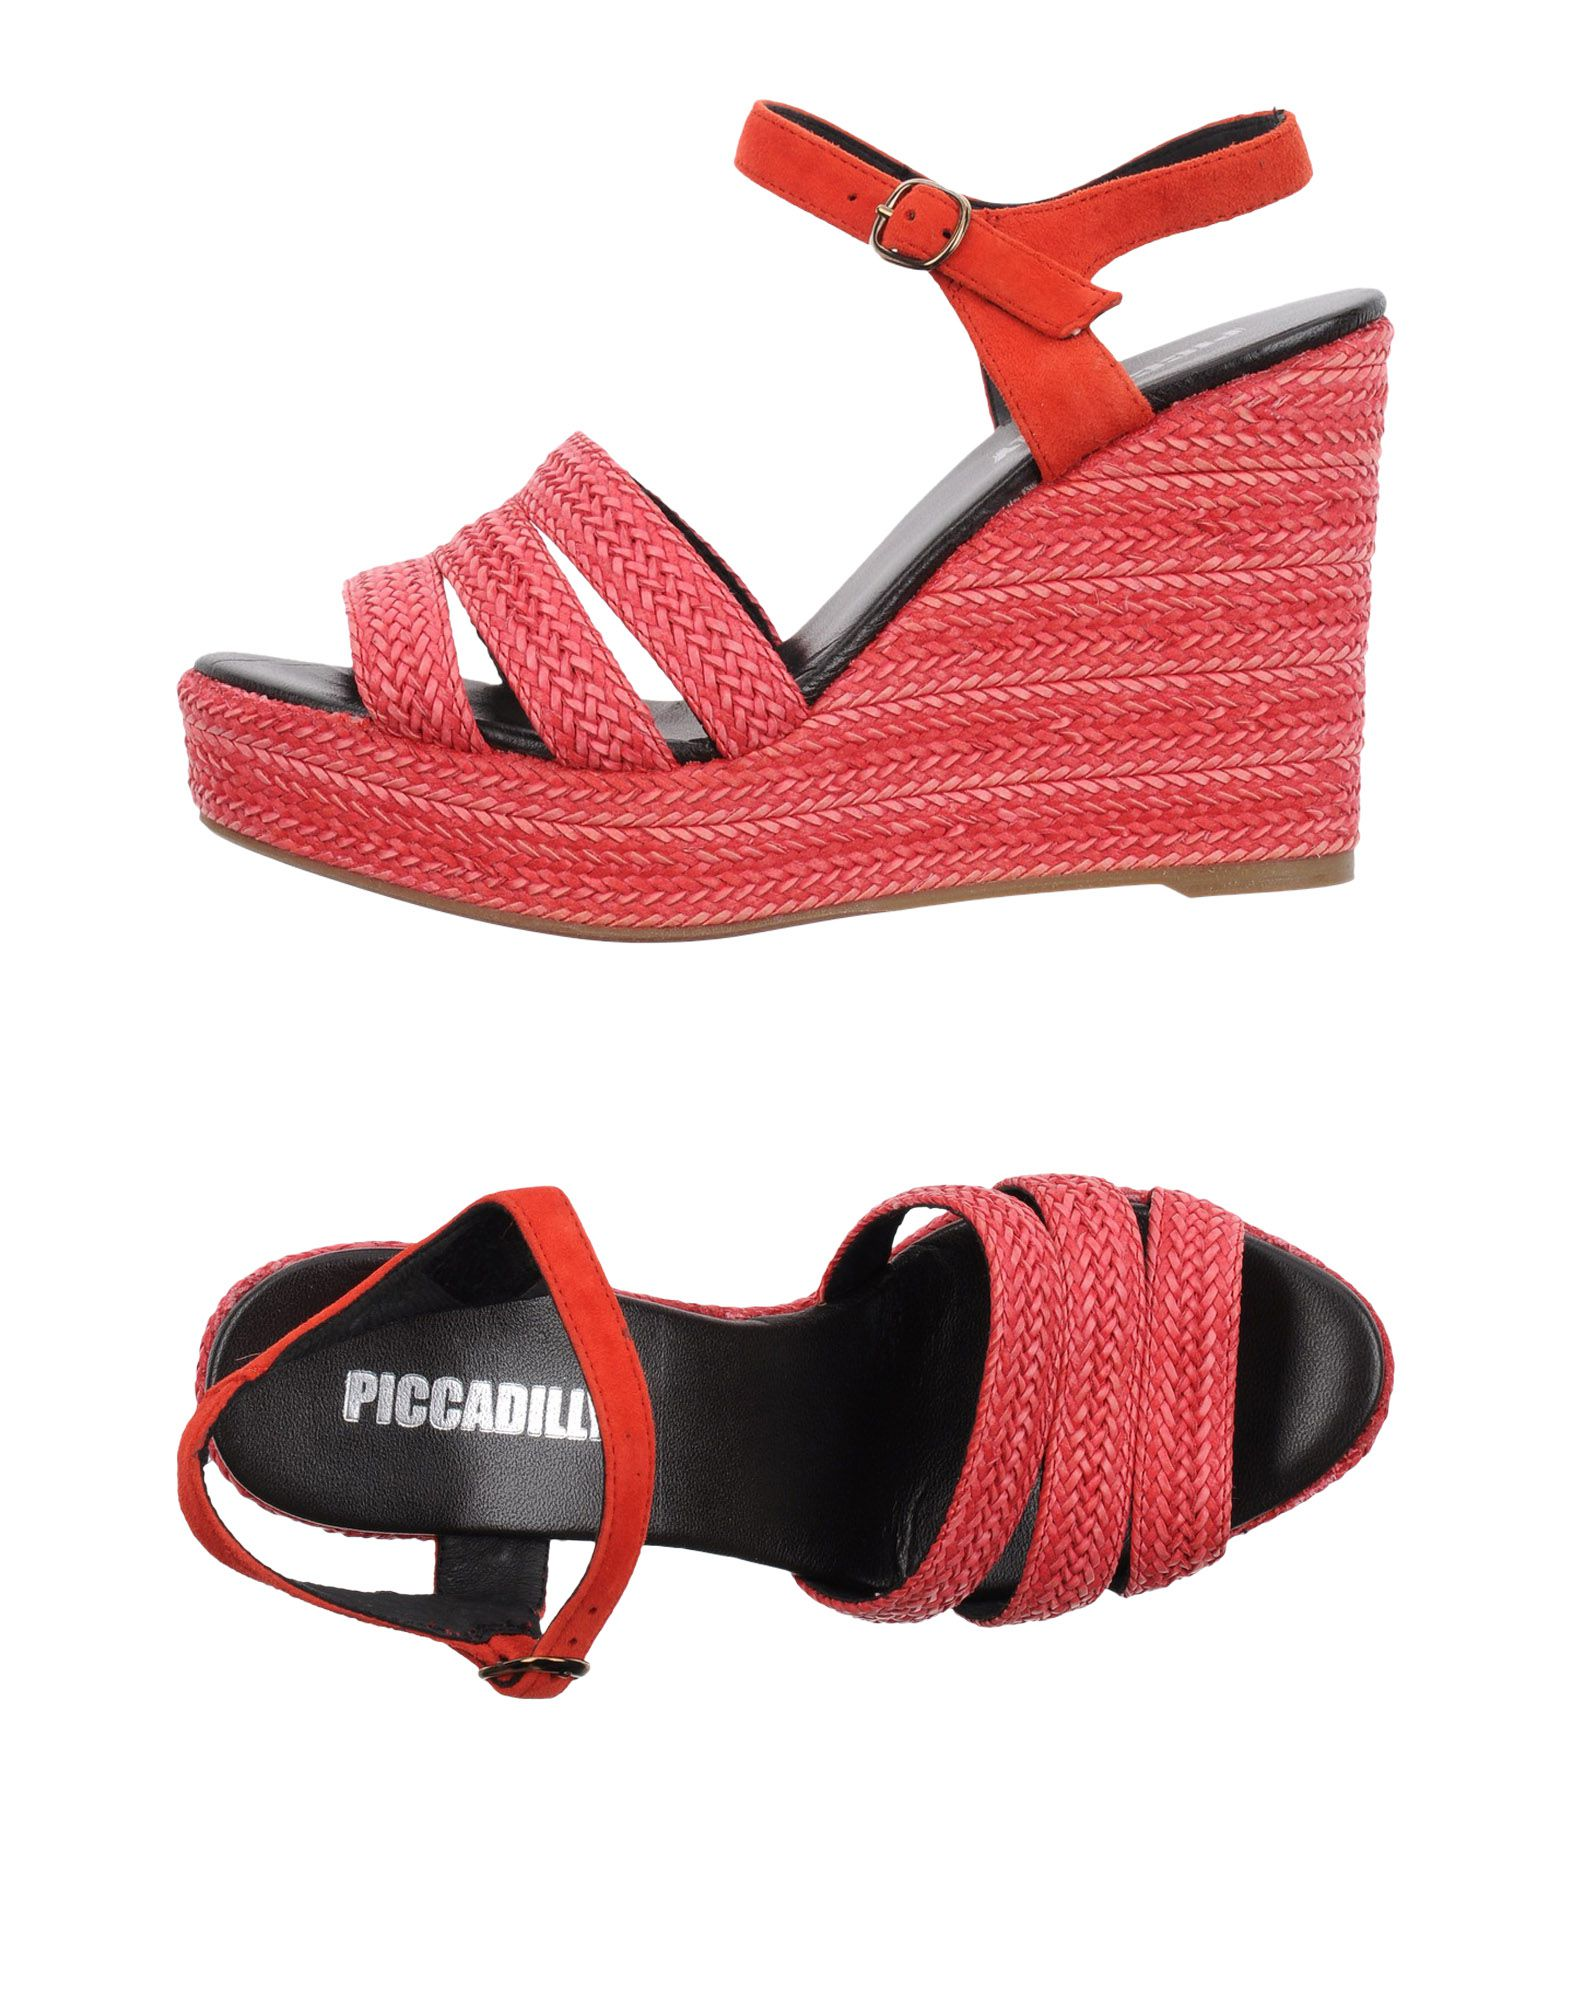 Espadrilles Piccadilly Femme - Espadrilles Piccadilly sur